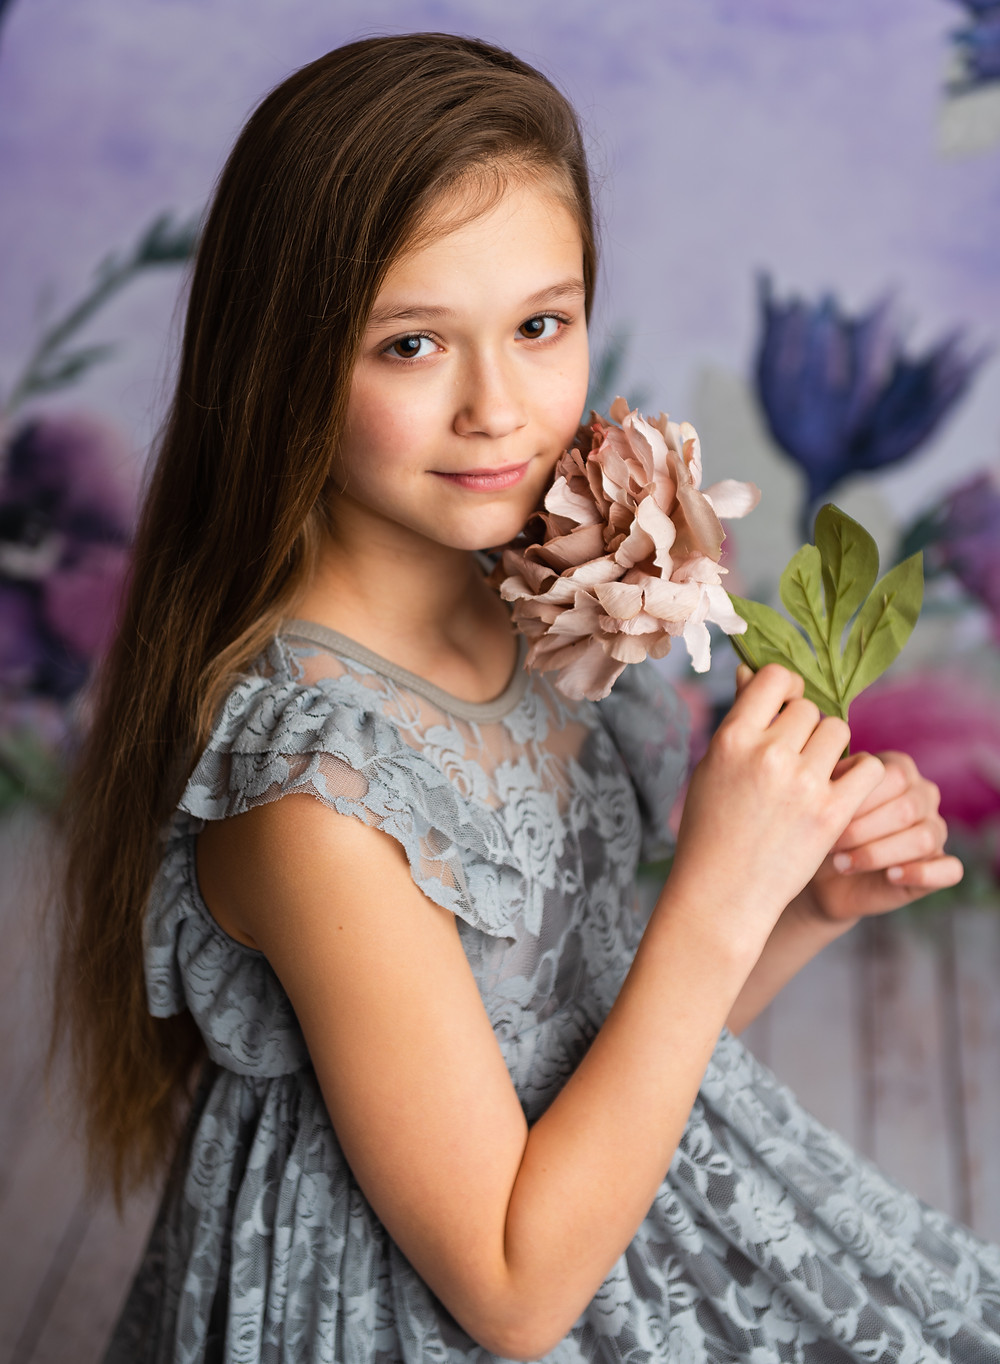 purple backdrop, floral backdrop, watercolor, flowers, ,studio photography, senior photography, milestone session, milestone, cakesmash, children photography, portraits, tween model, tween photography, baby photography